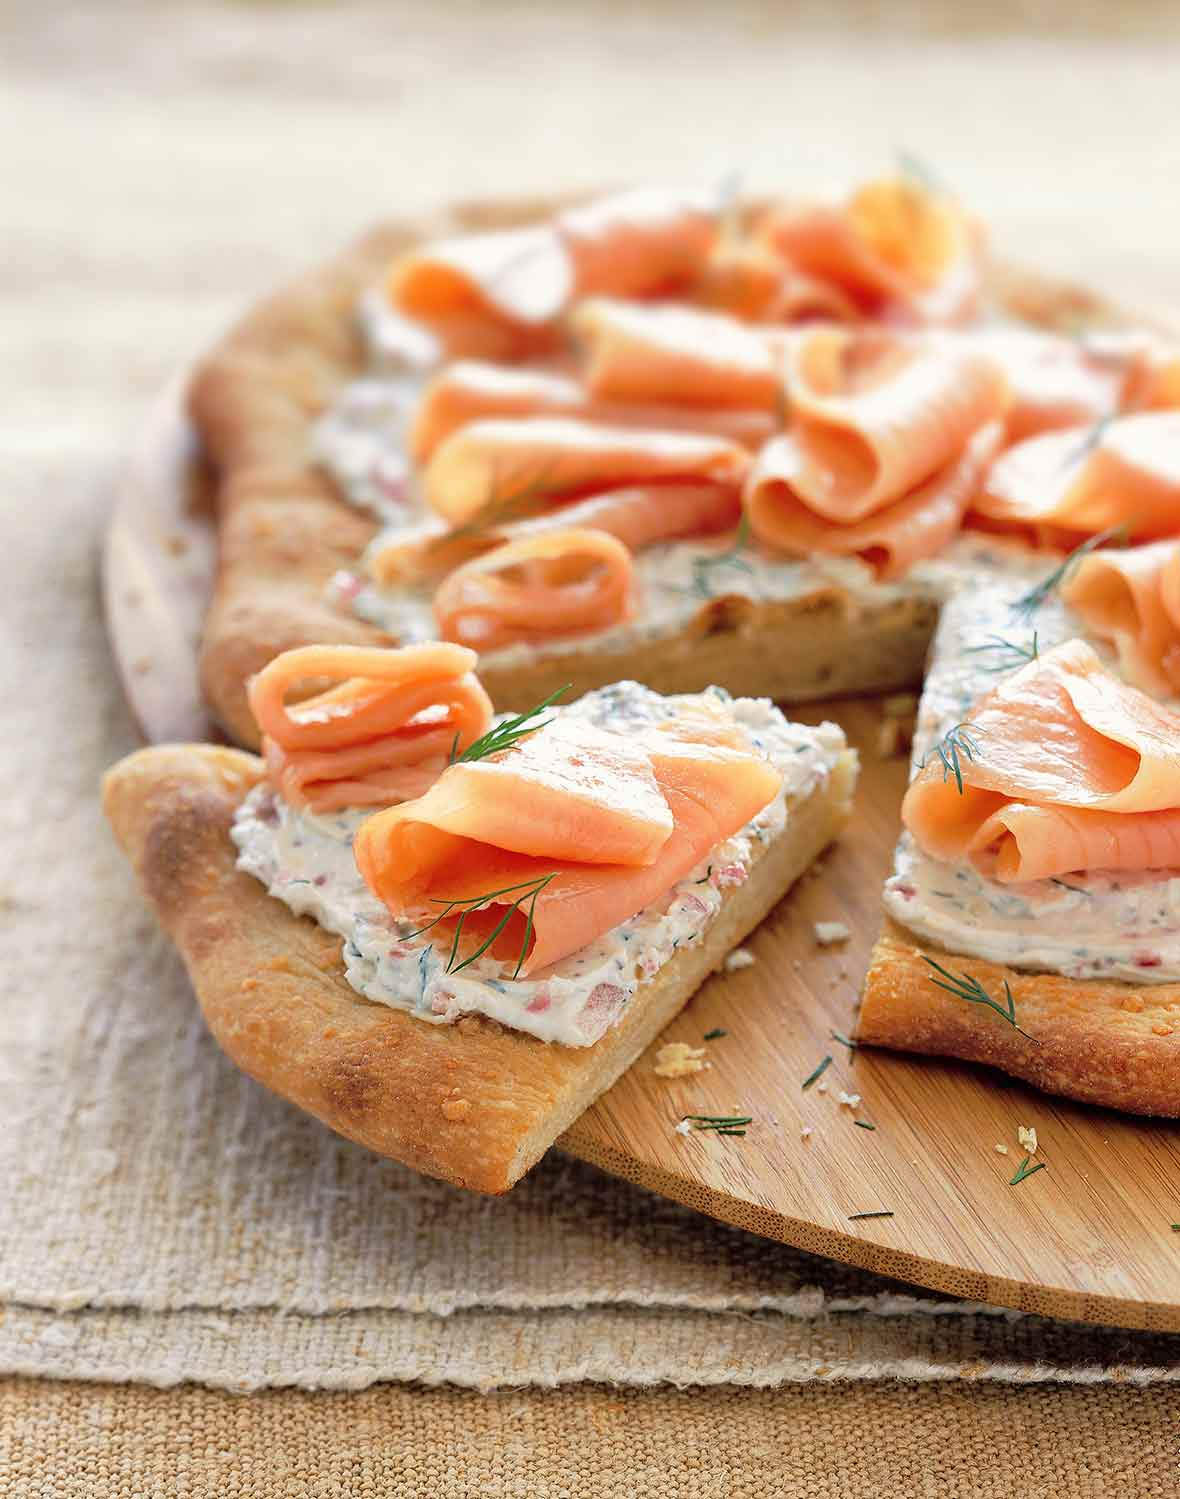 A smoked salmon pizza with cream cheese, red onion, and dill with one wedge cut out.